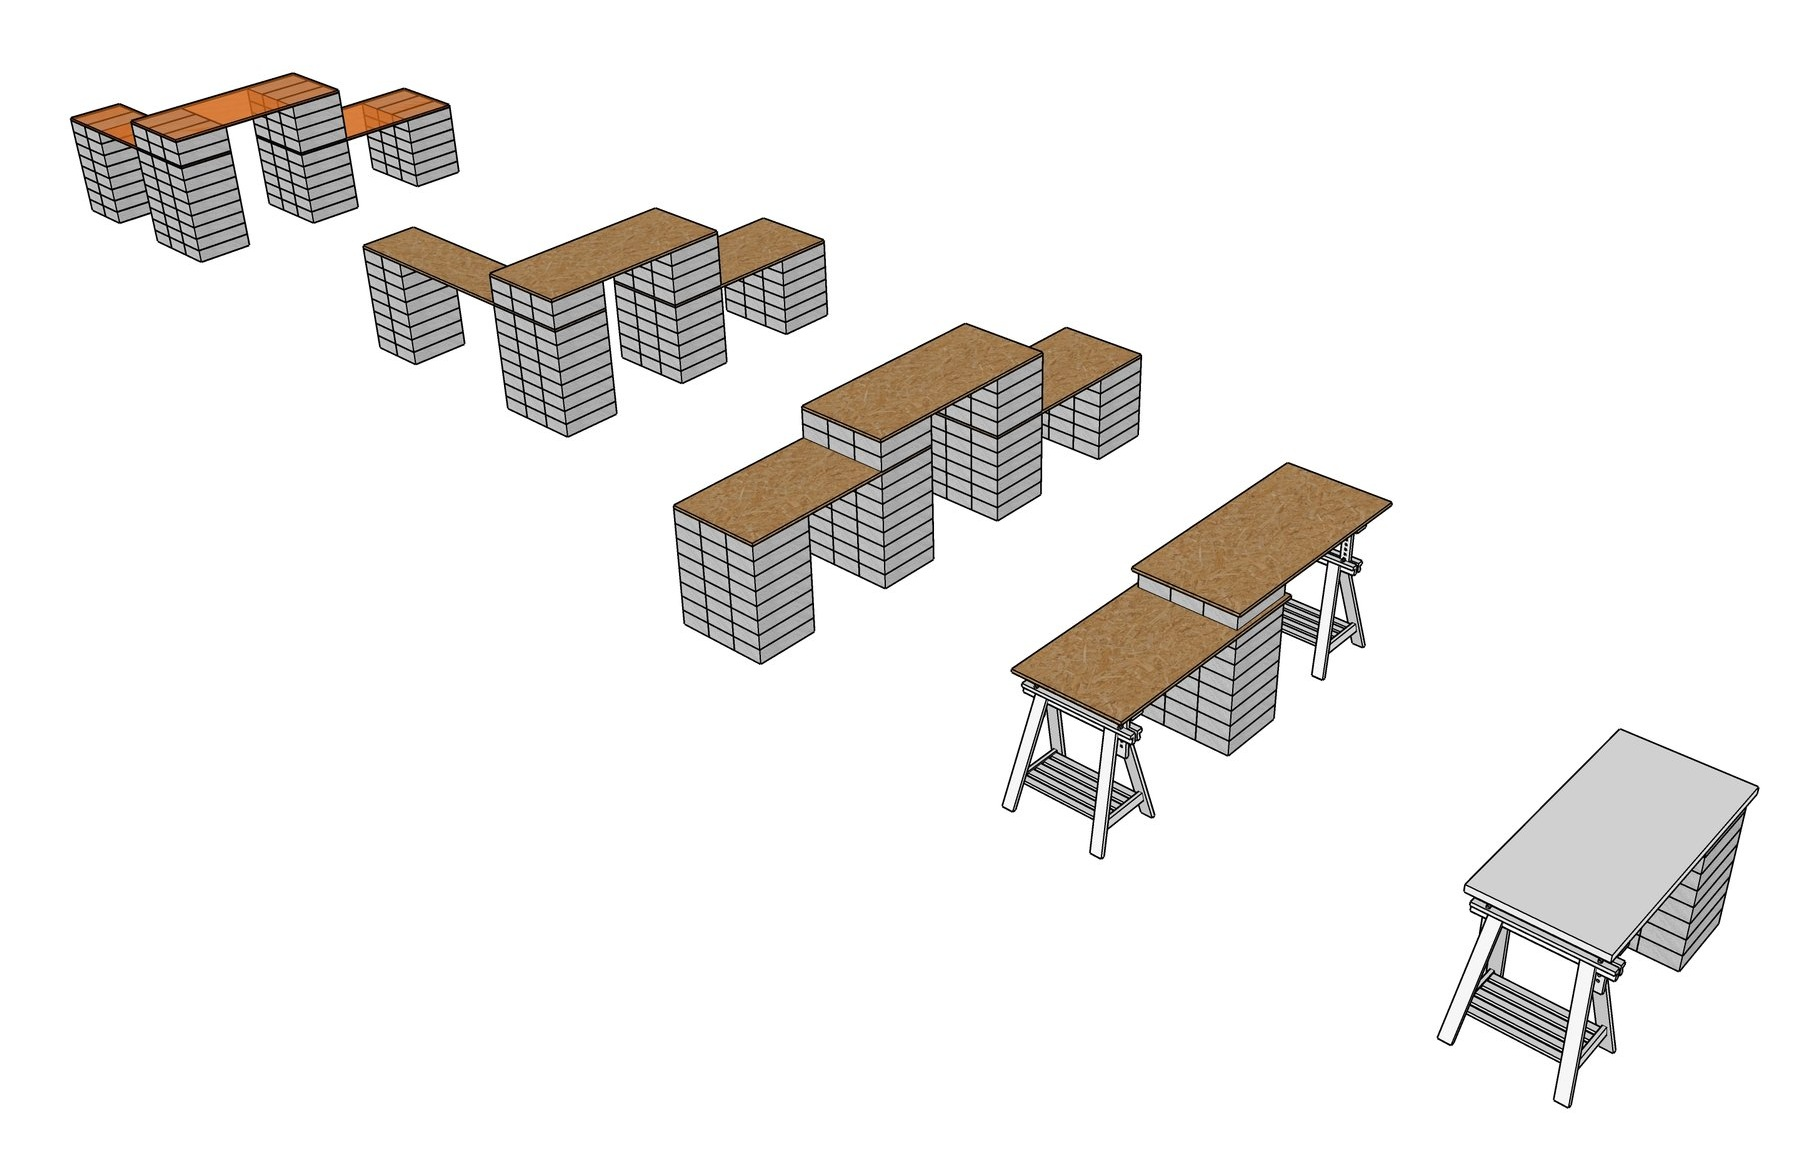 CAD image showing the breakdown of each of the furniture elements, how they would be assembled and what material matches with which piece.